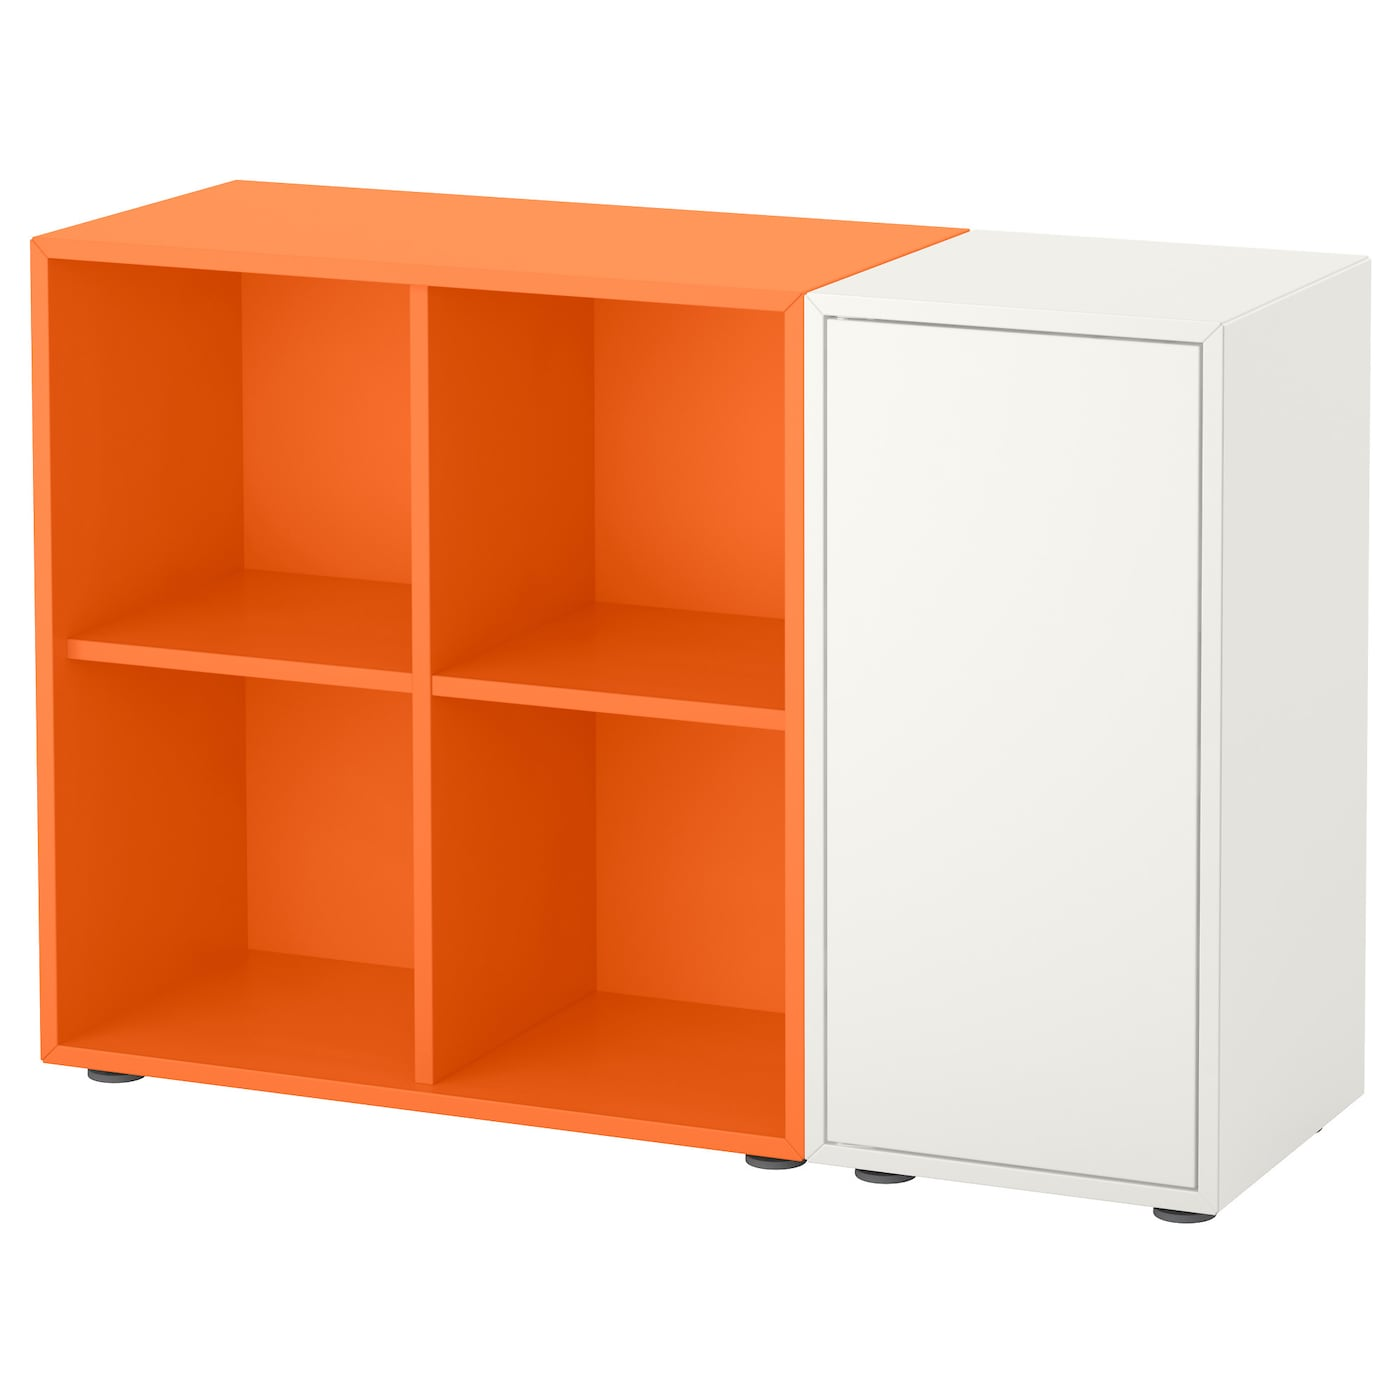 EKET Cabinet combination with feet Whiteorange 105x35x72